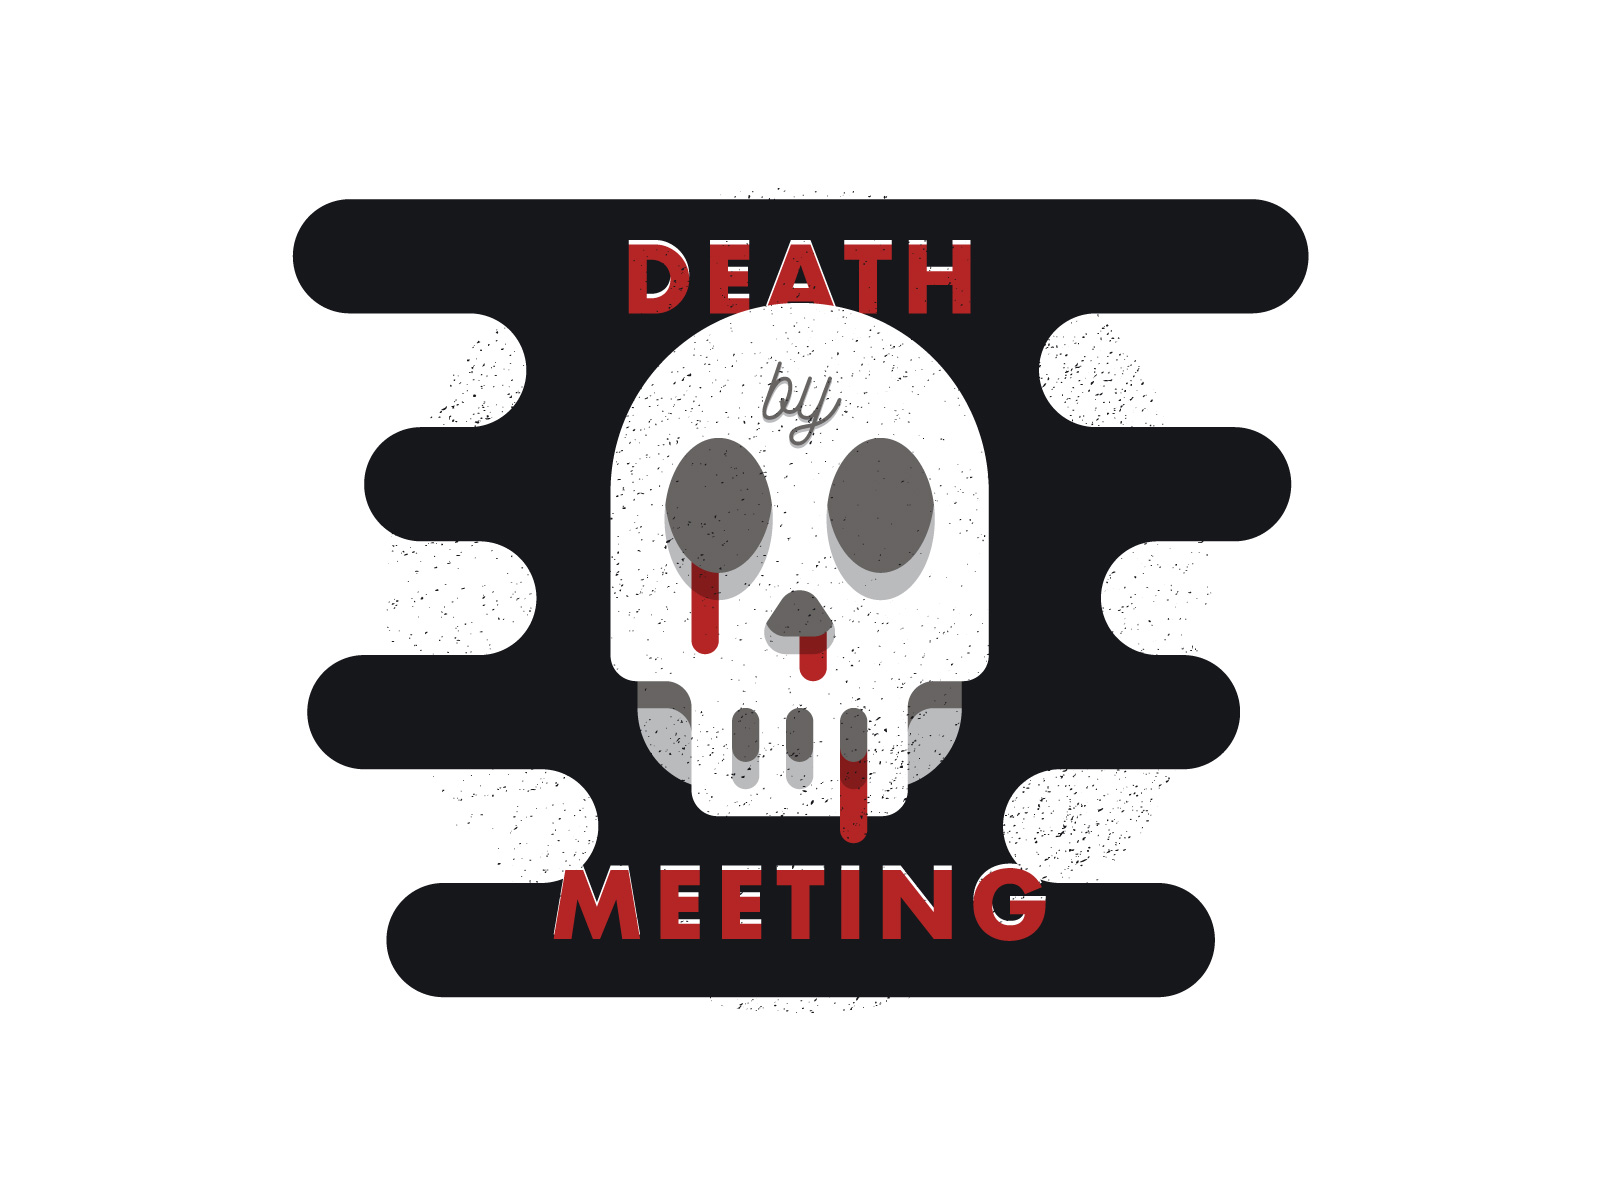 Death by Meeting - This was always a joke between me & my design co-workers. This is my representation of that ongoing joke.